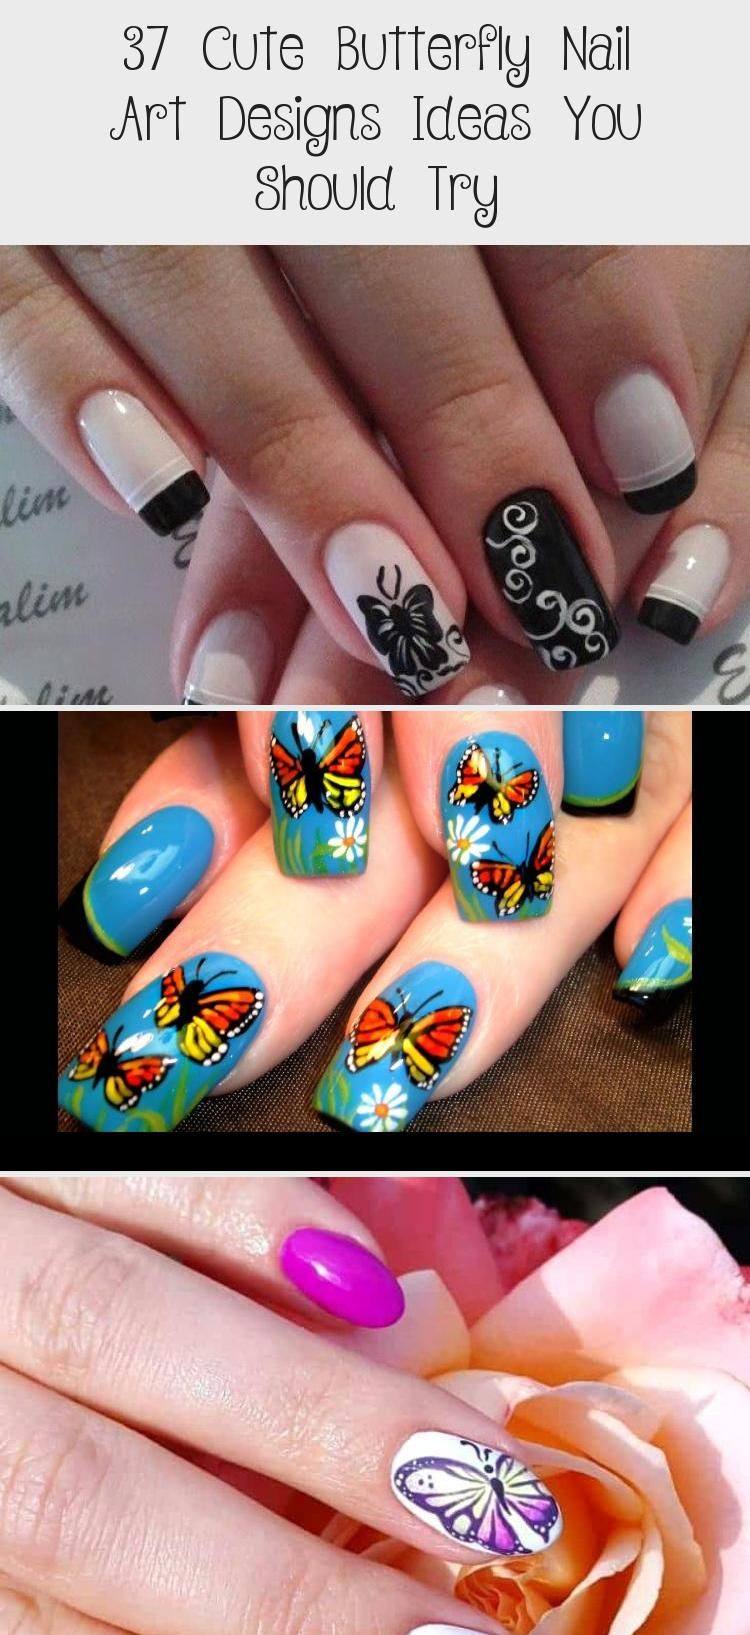 Photo of 37 Cute Butterfly Nail Art Designs Ideas You Should Try – Nail Art